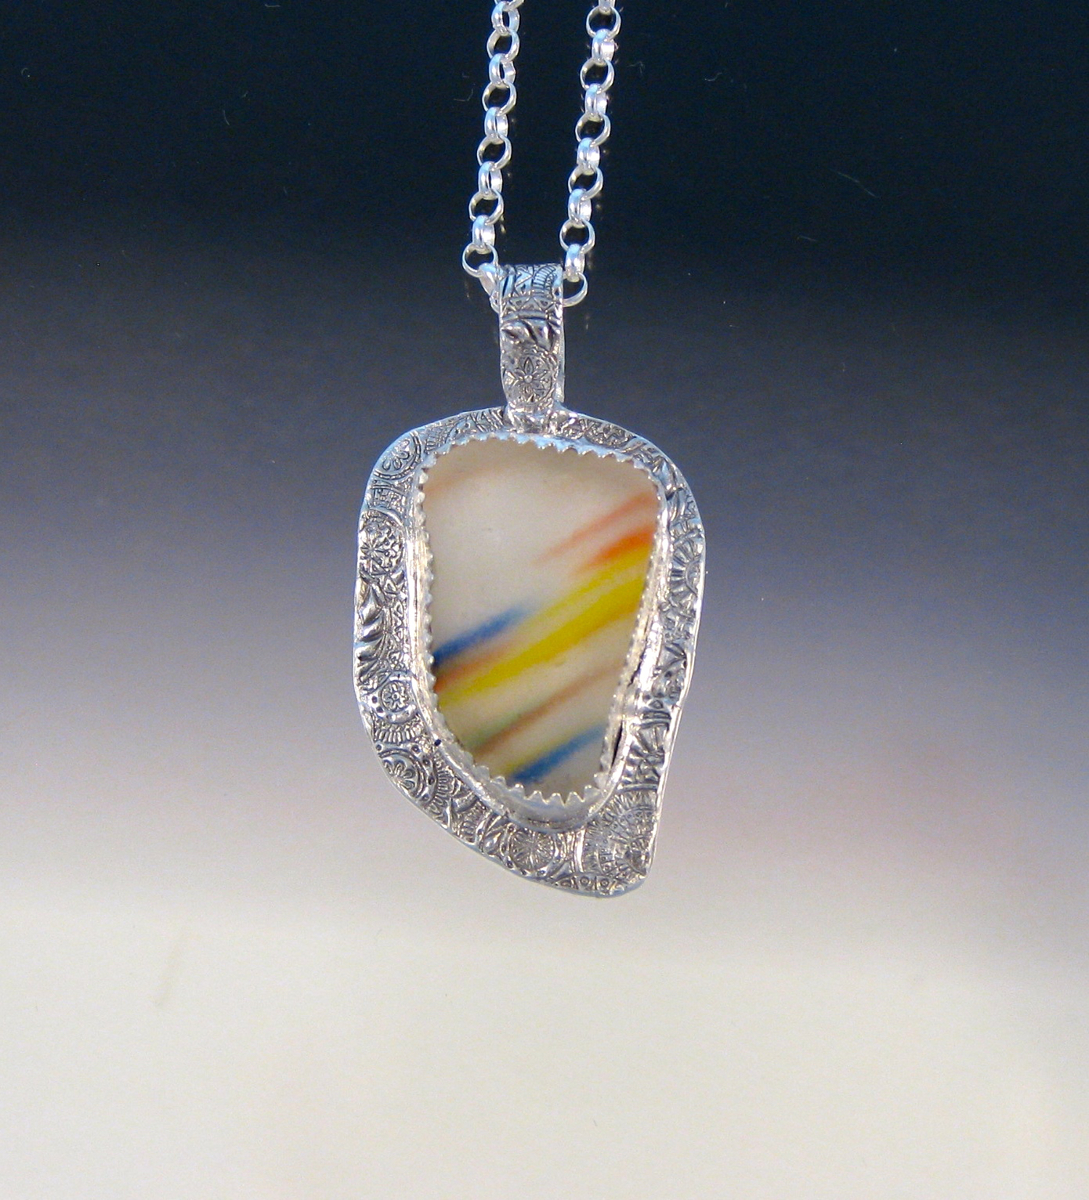 P5145 - Rainbow and white flash glass pendant (large view)